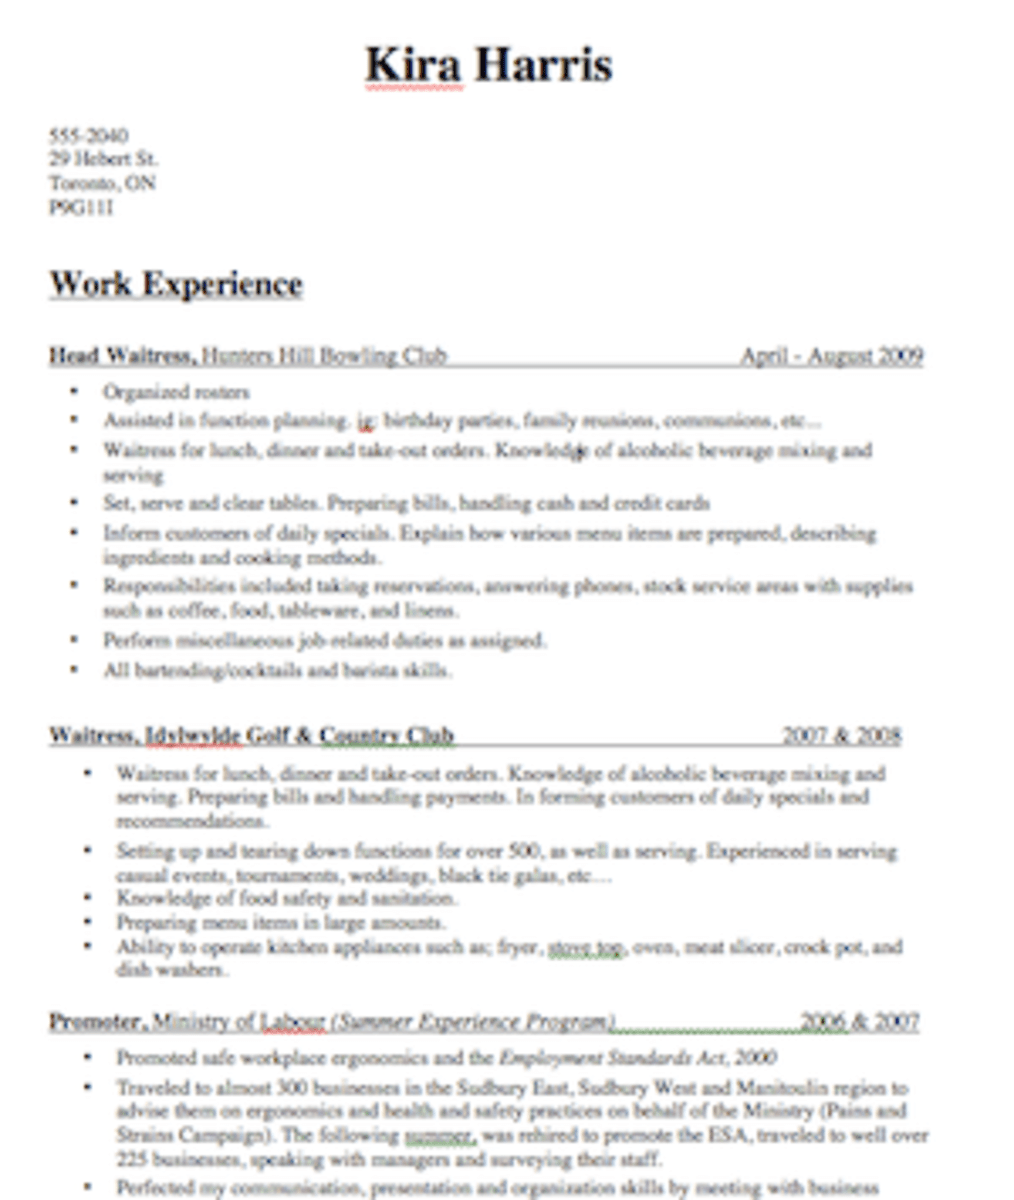 professional server bartender templates to showcase your talent - resume for a bartender